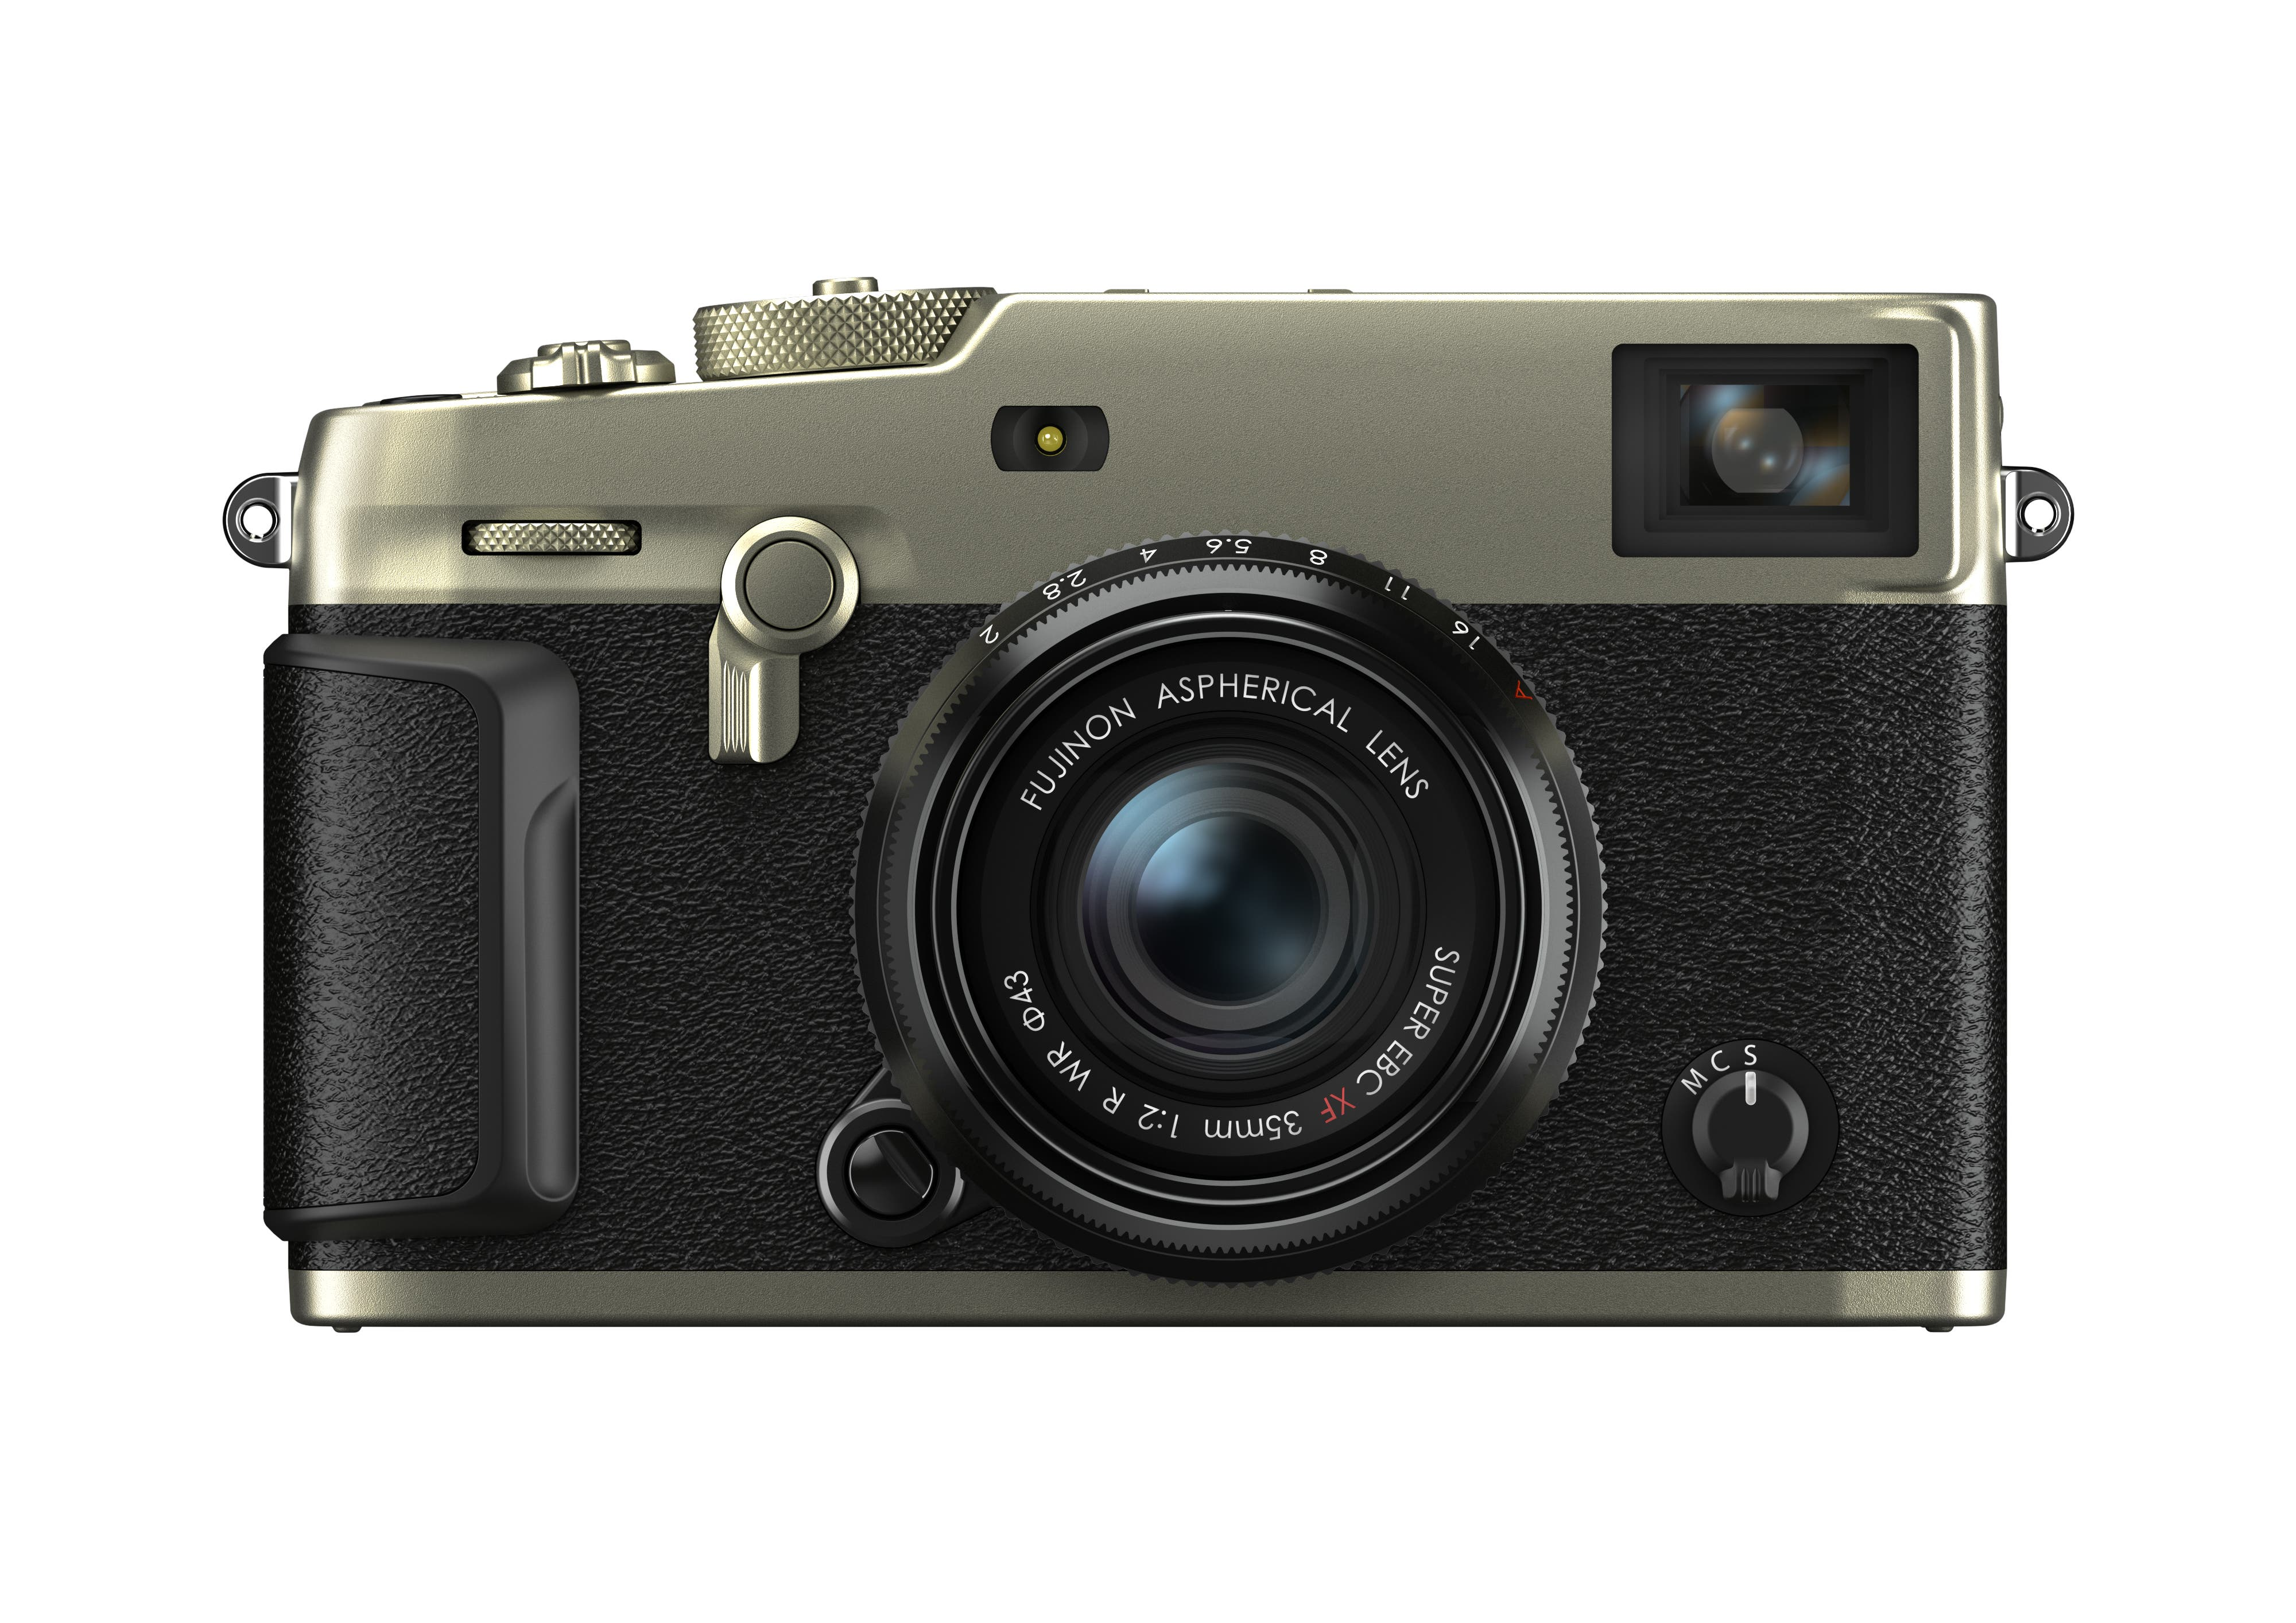 The Fujifilm X-Pro 3 Is Finally Announced, Prices Start at $1,799.95